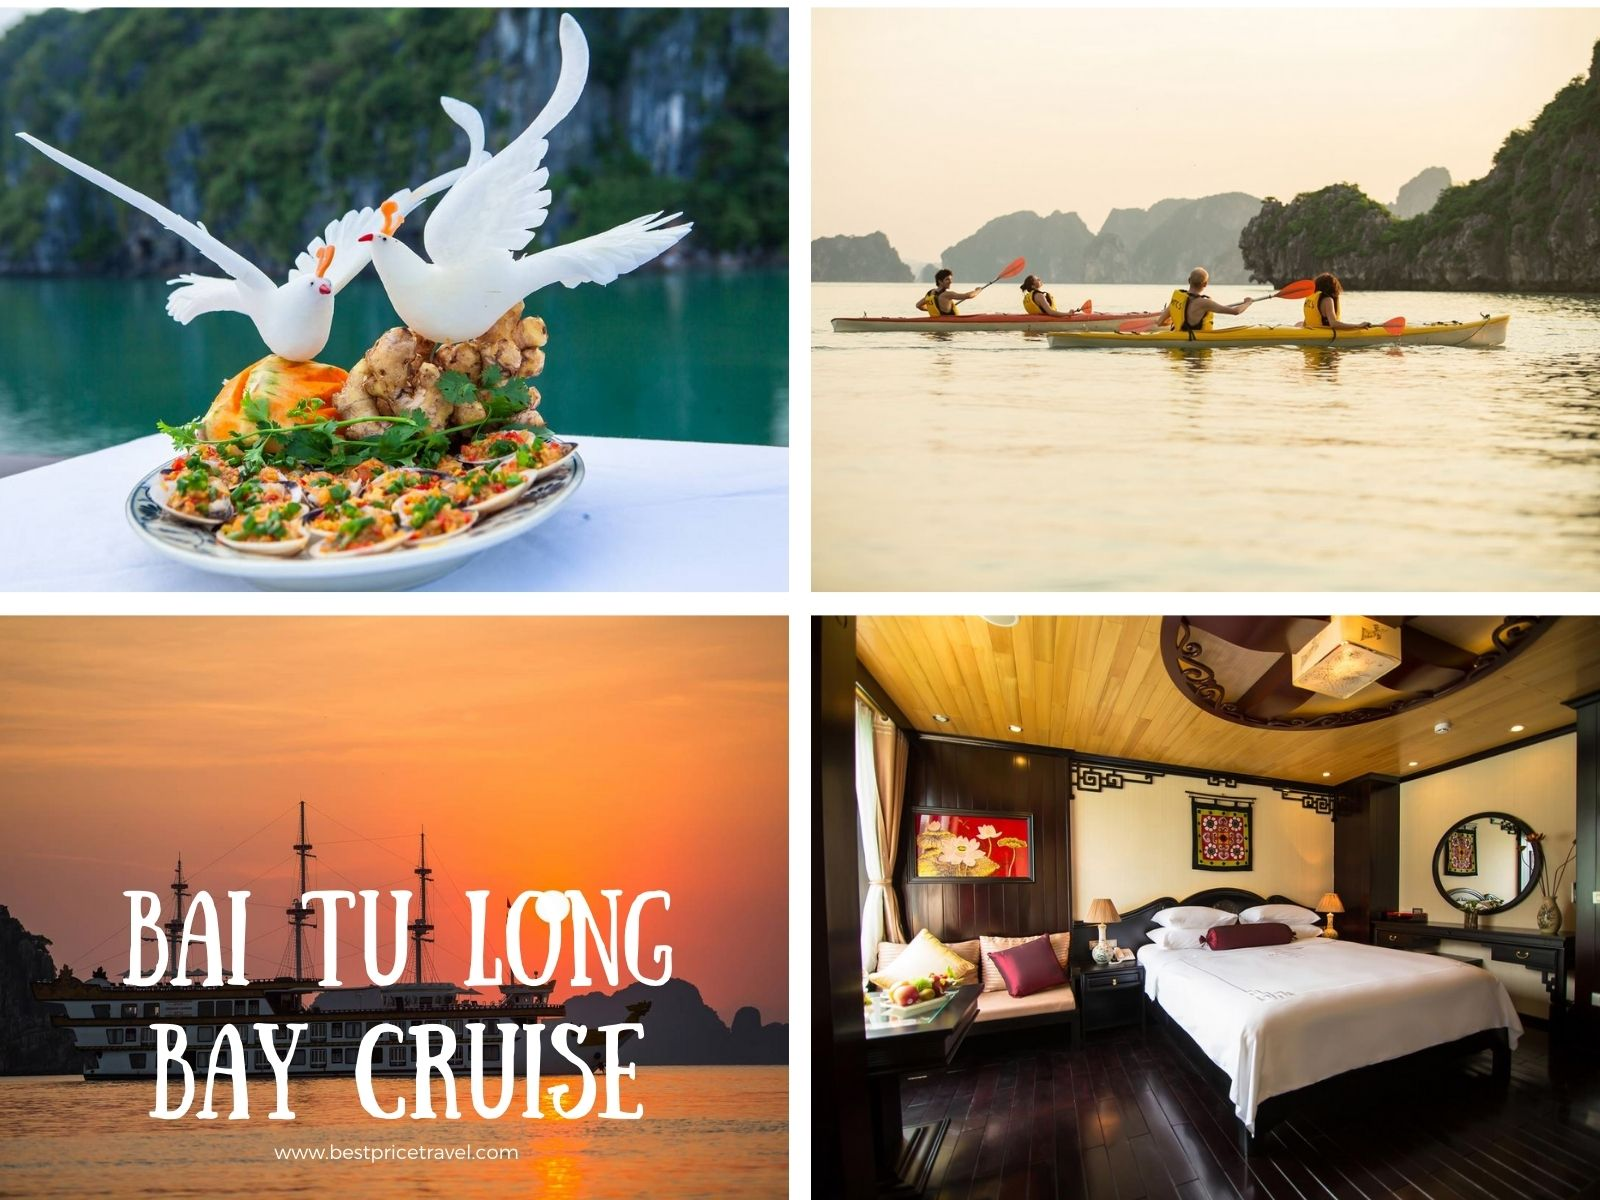 a Best Bai Tu Long Bay Cruise